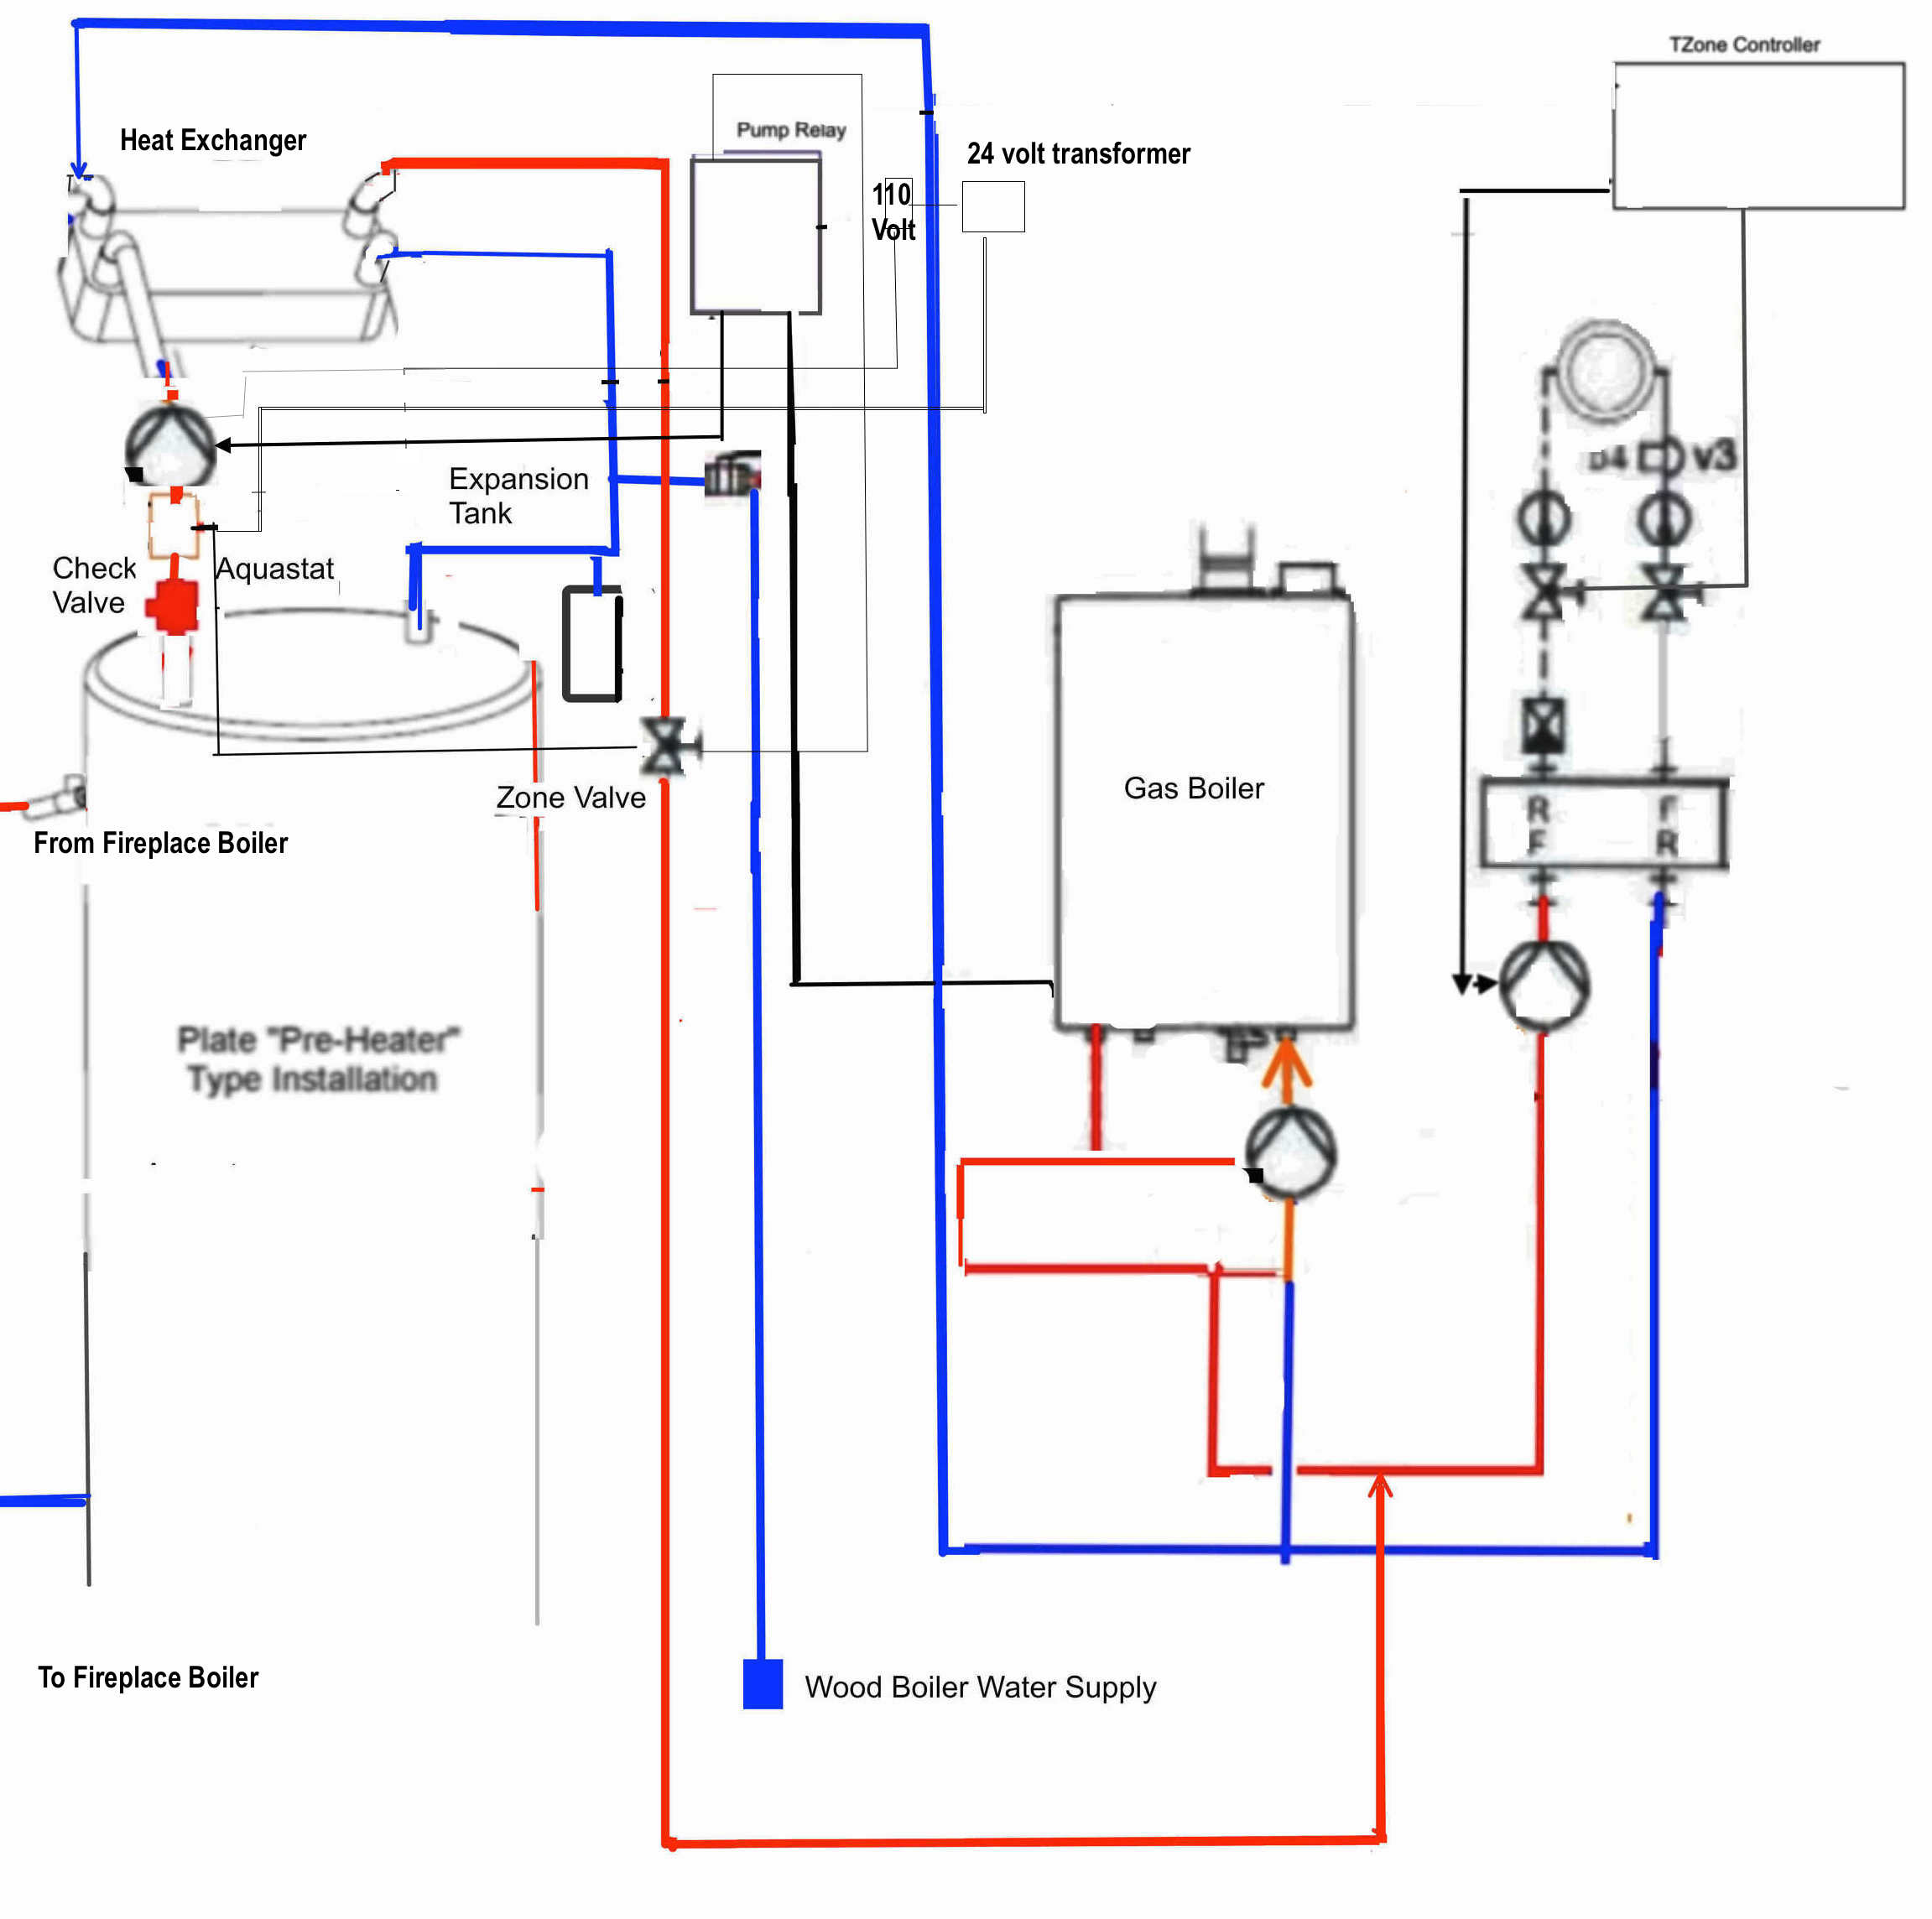 Miraculous Grundfos Boiler Wiring Diagram Wiring Diagram Tutorial Wiring Digital Resources Remcakbiperorg